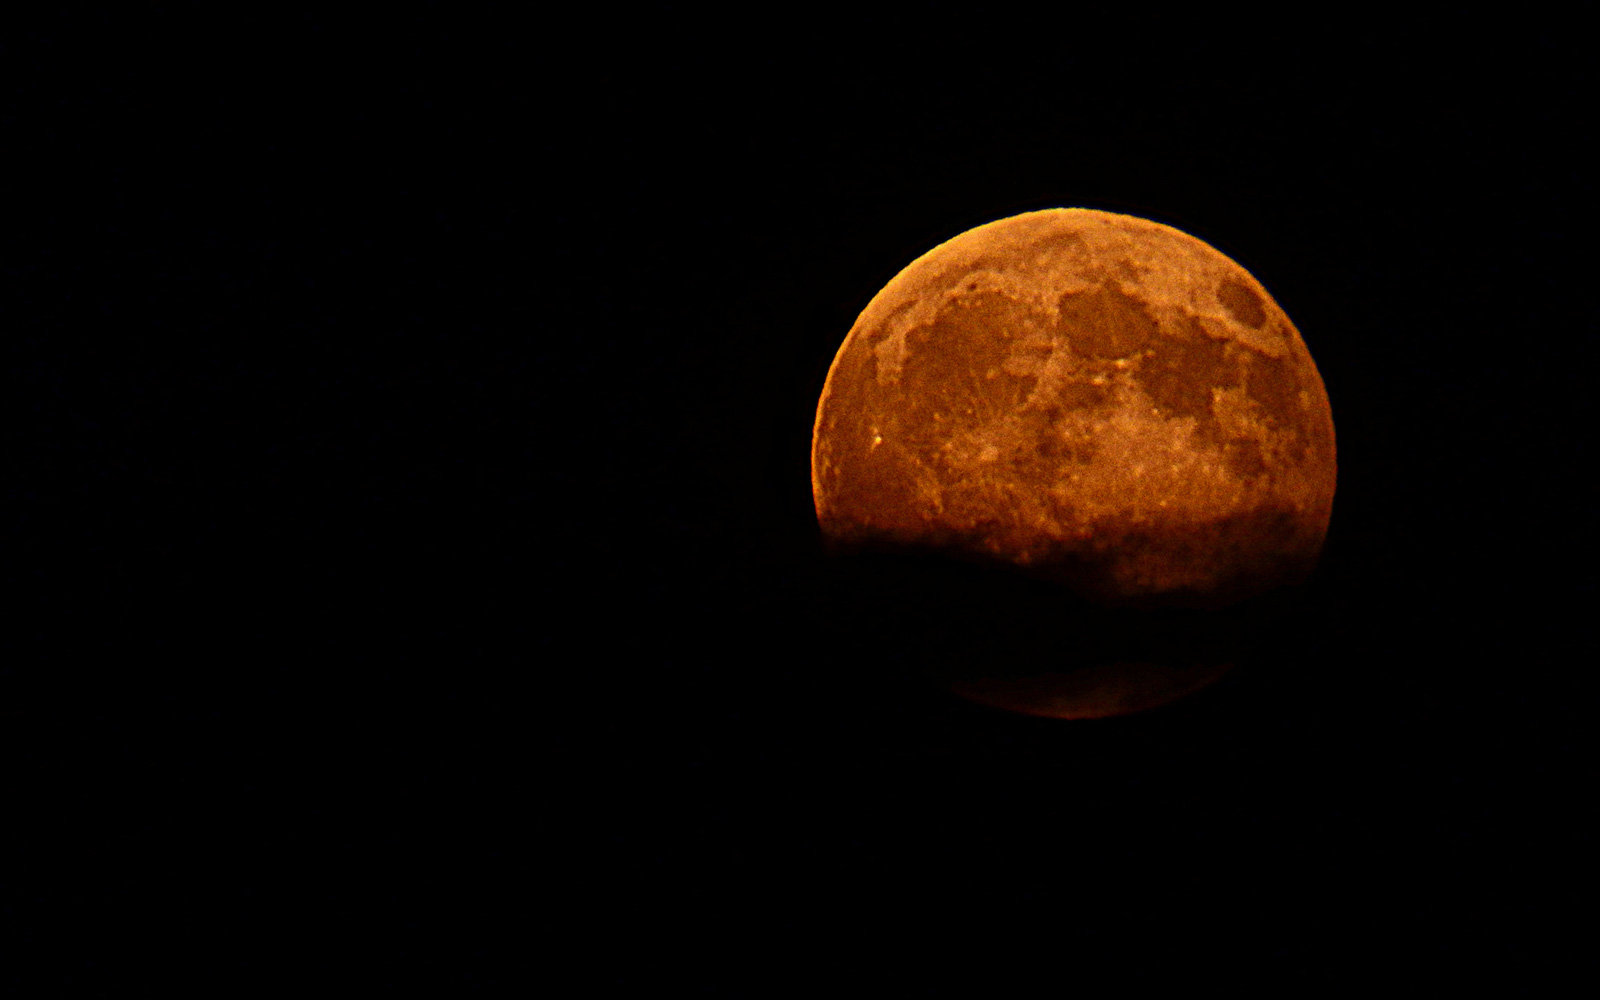 When to see the next super blue blood moon